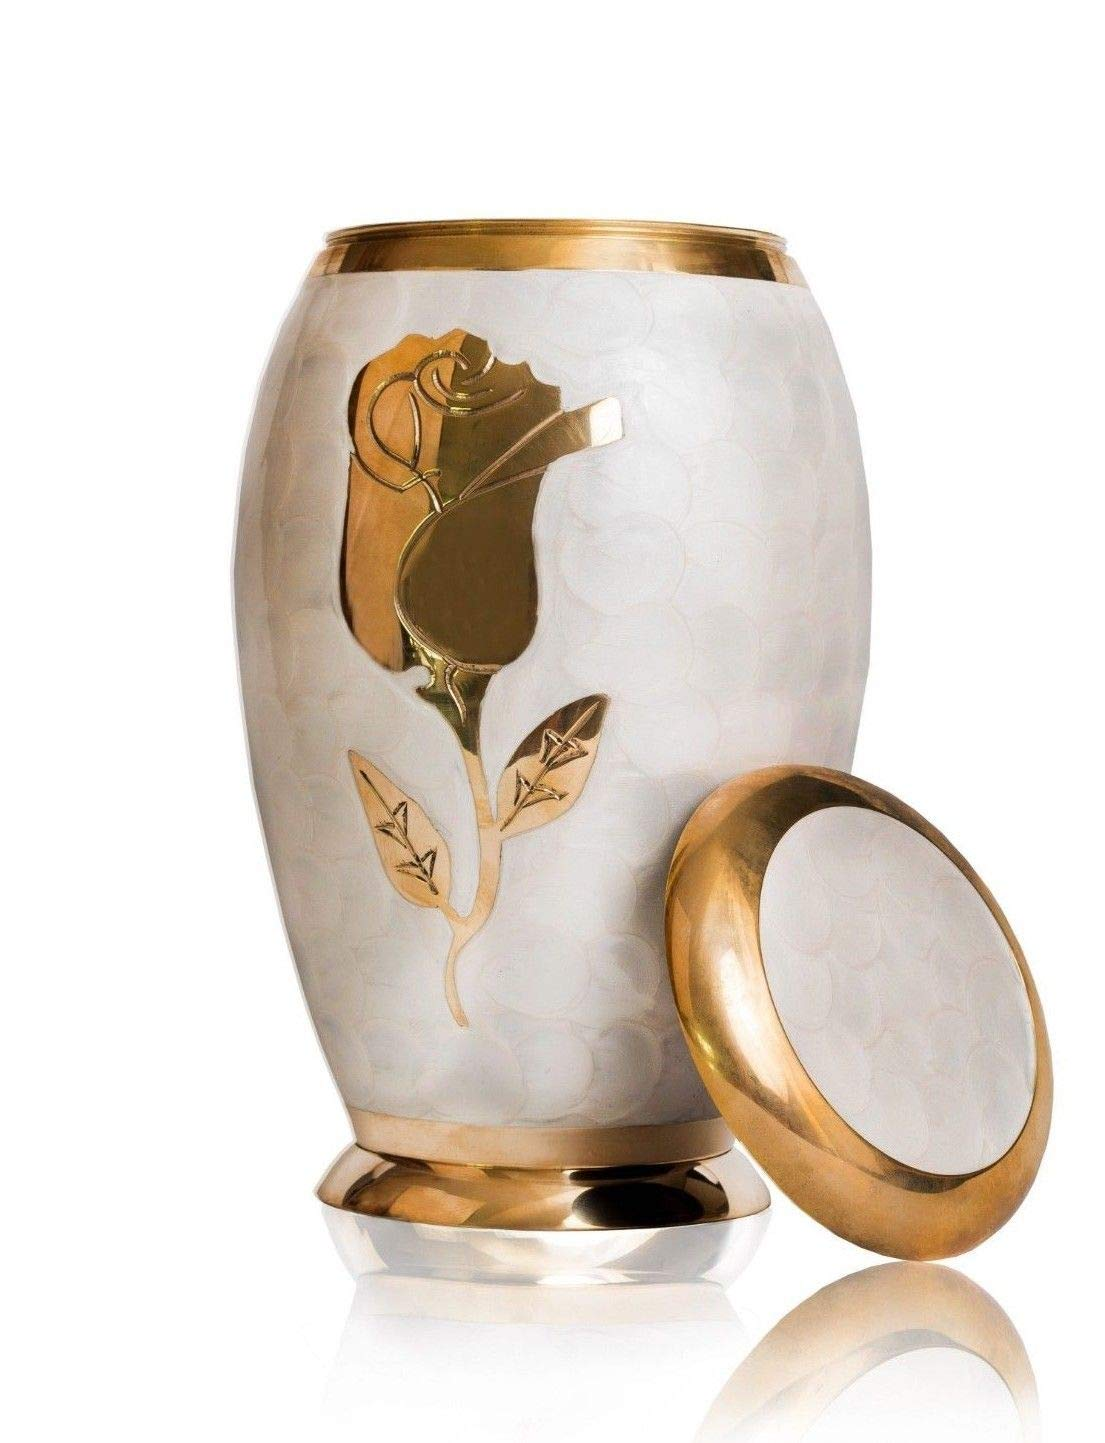 Nazareth Store Beautiful Adult Cremation Urn for Human Ashes Elegant Elite Pearl White and Gold Rose Flower,Hand Made Brass Classy Finish to Honor Your Loved One - with Velvet Box